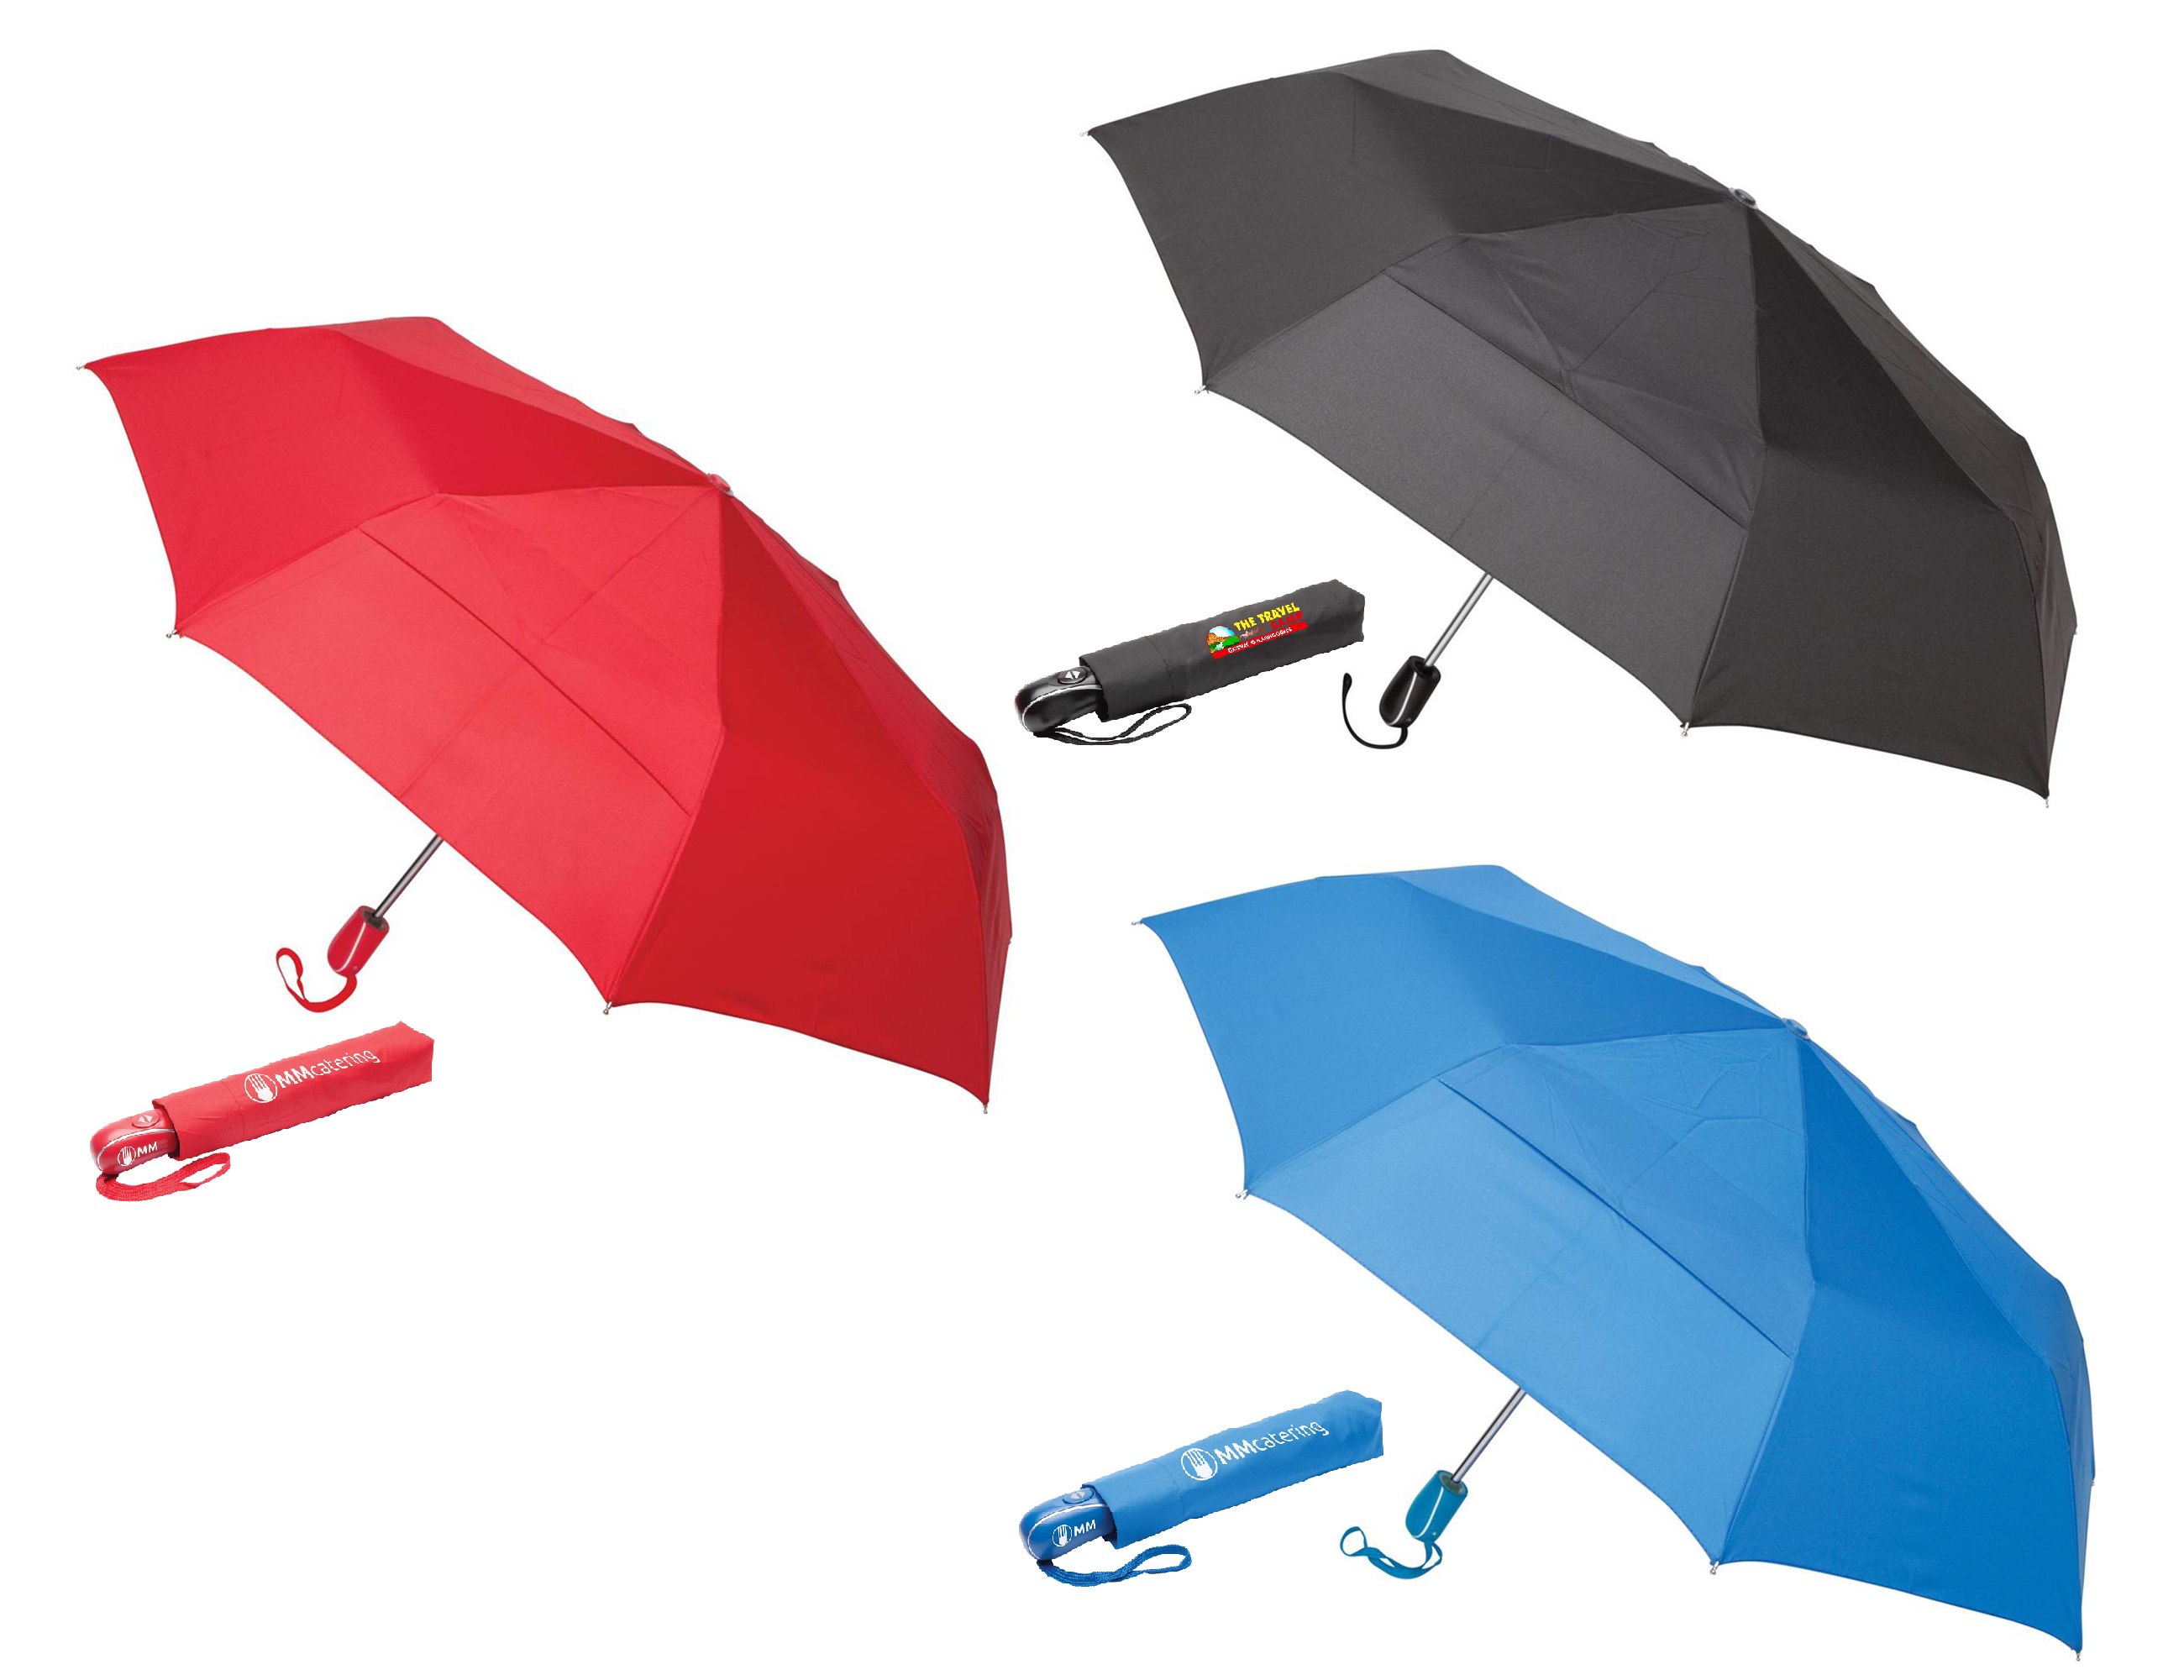 Genie Auto Open/Close Umbrella